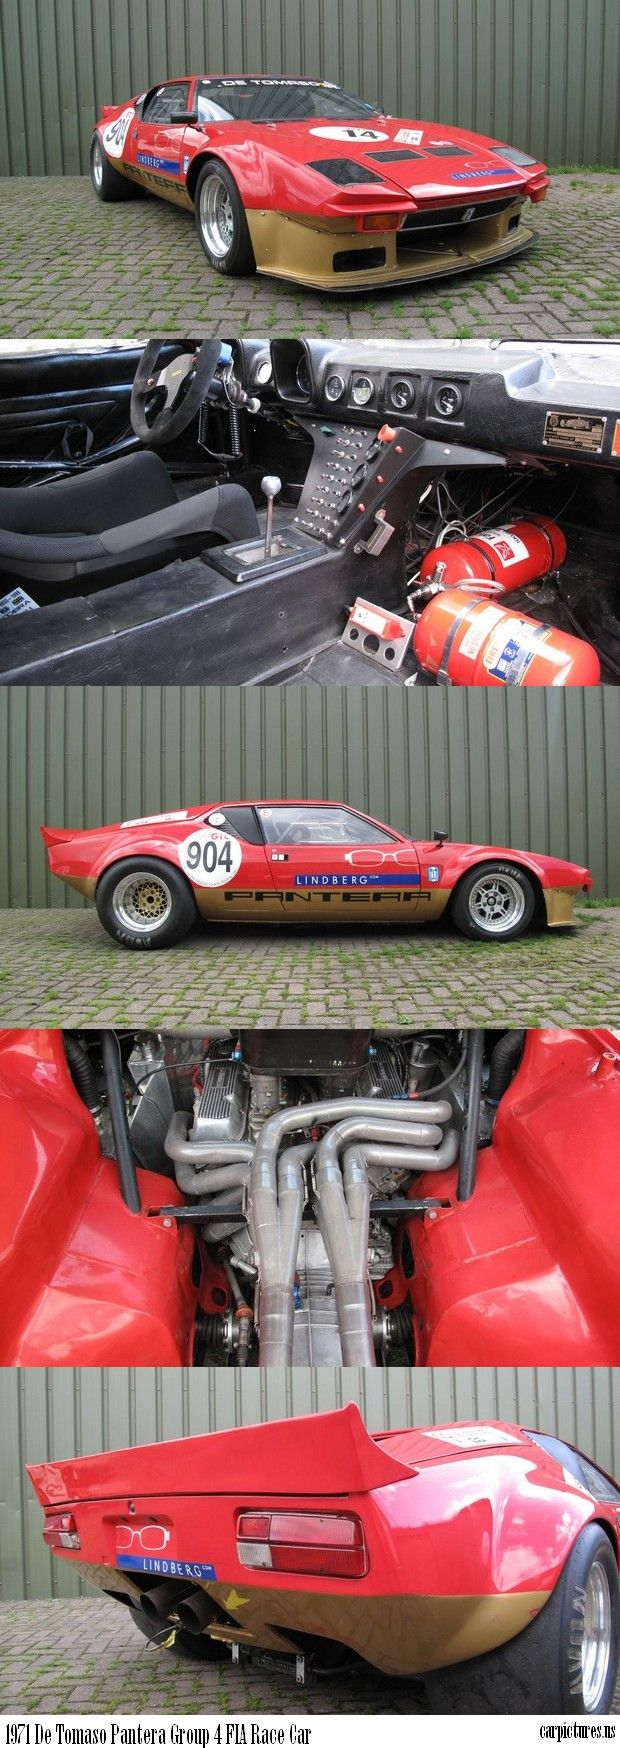 1971 De Tomaso Pantera Group 4 FIA Race Car